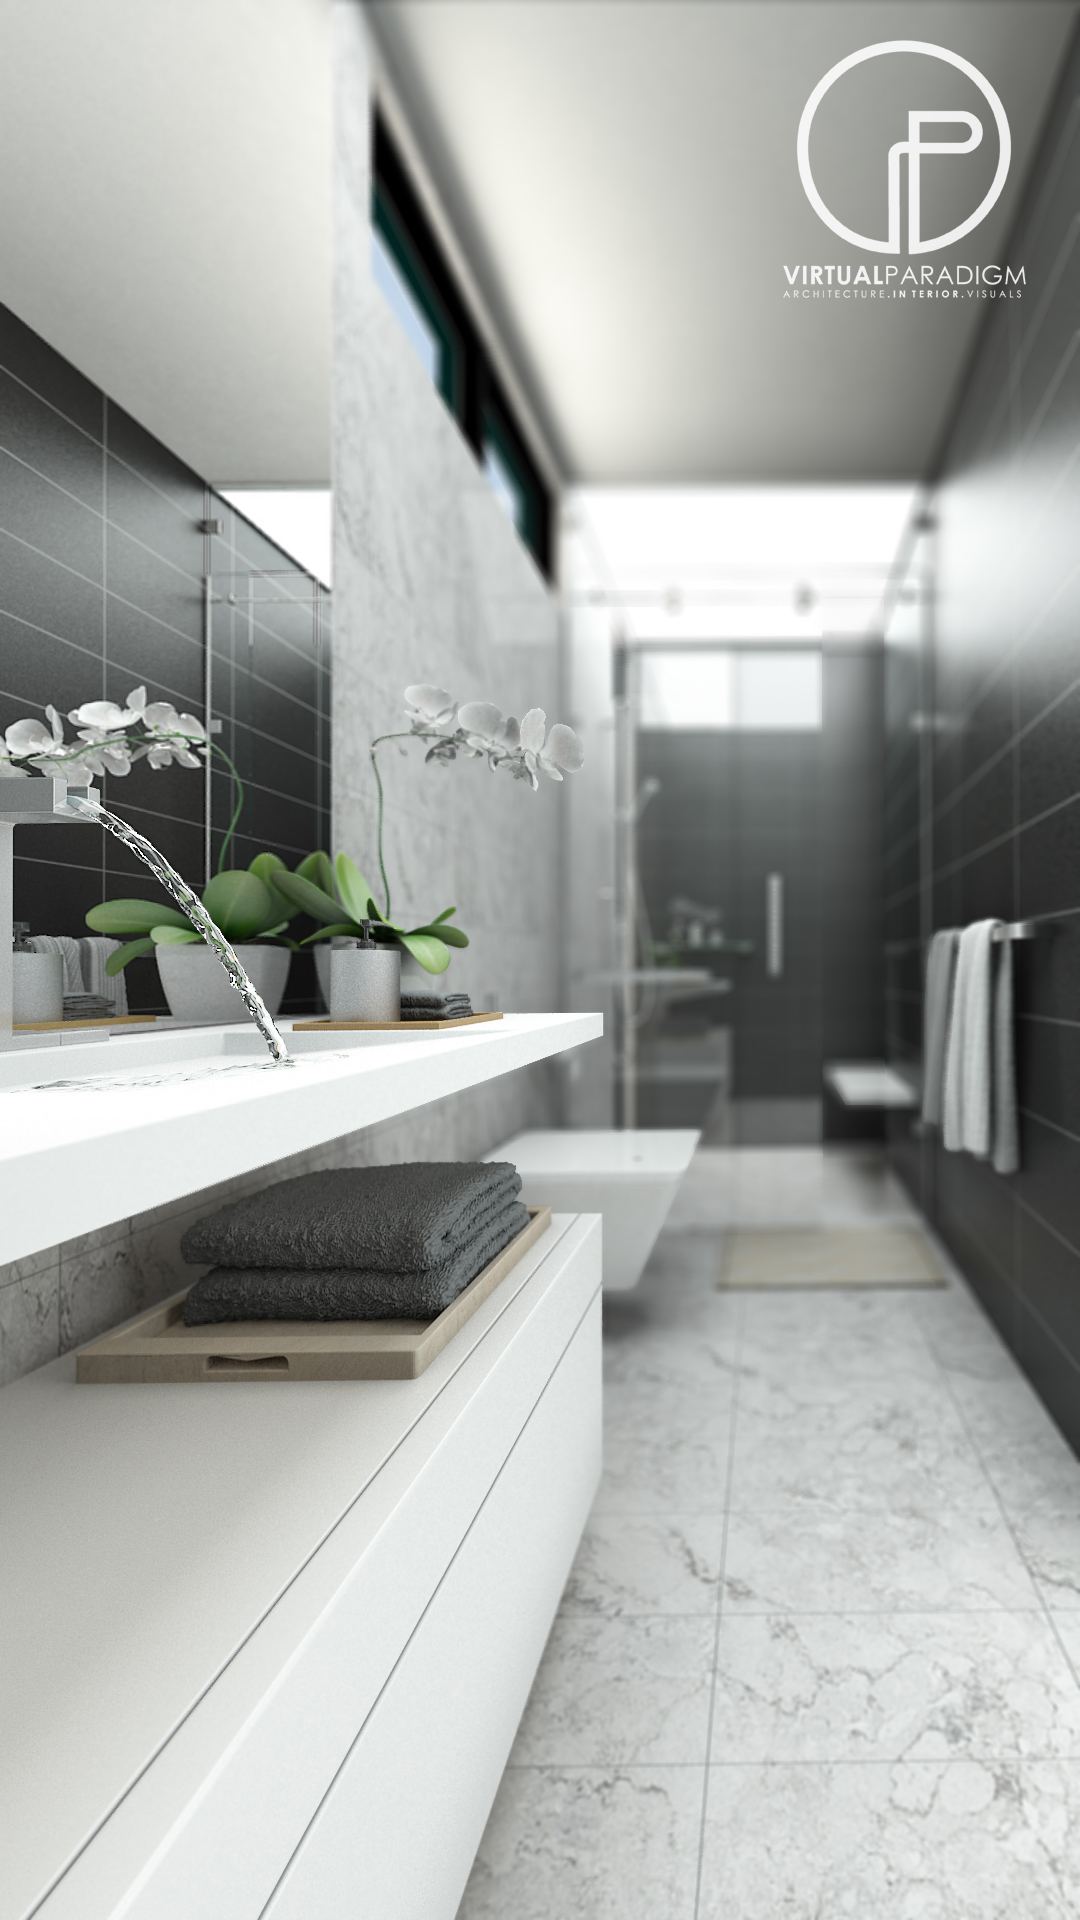 3ds max vray photoshop #Ps25Under25